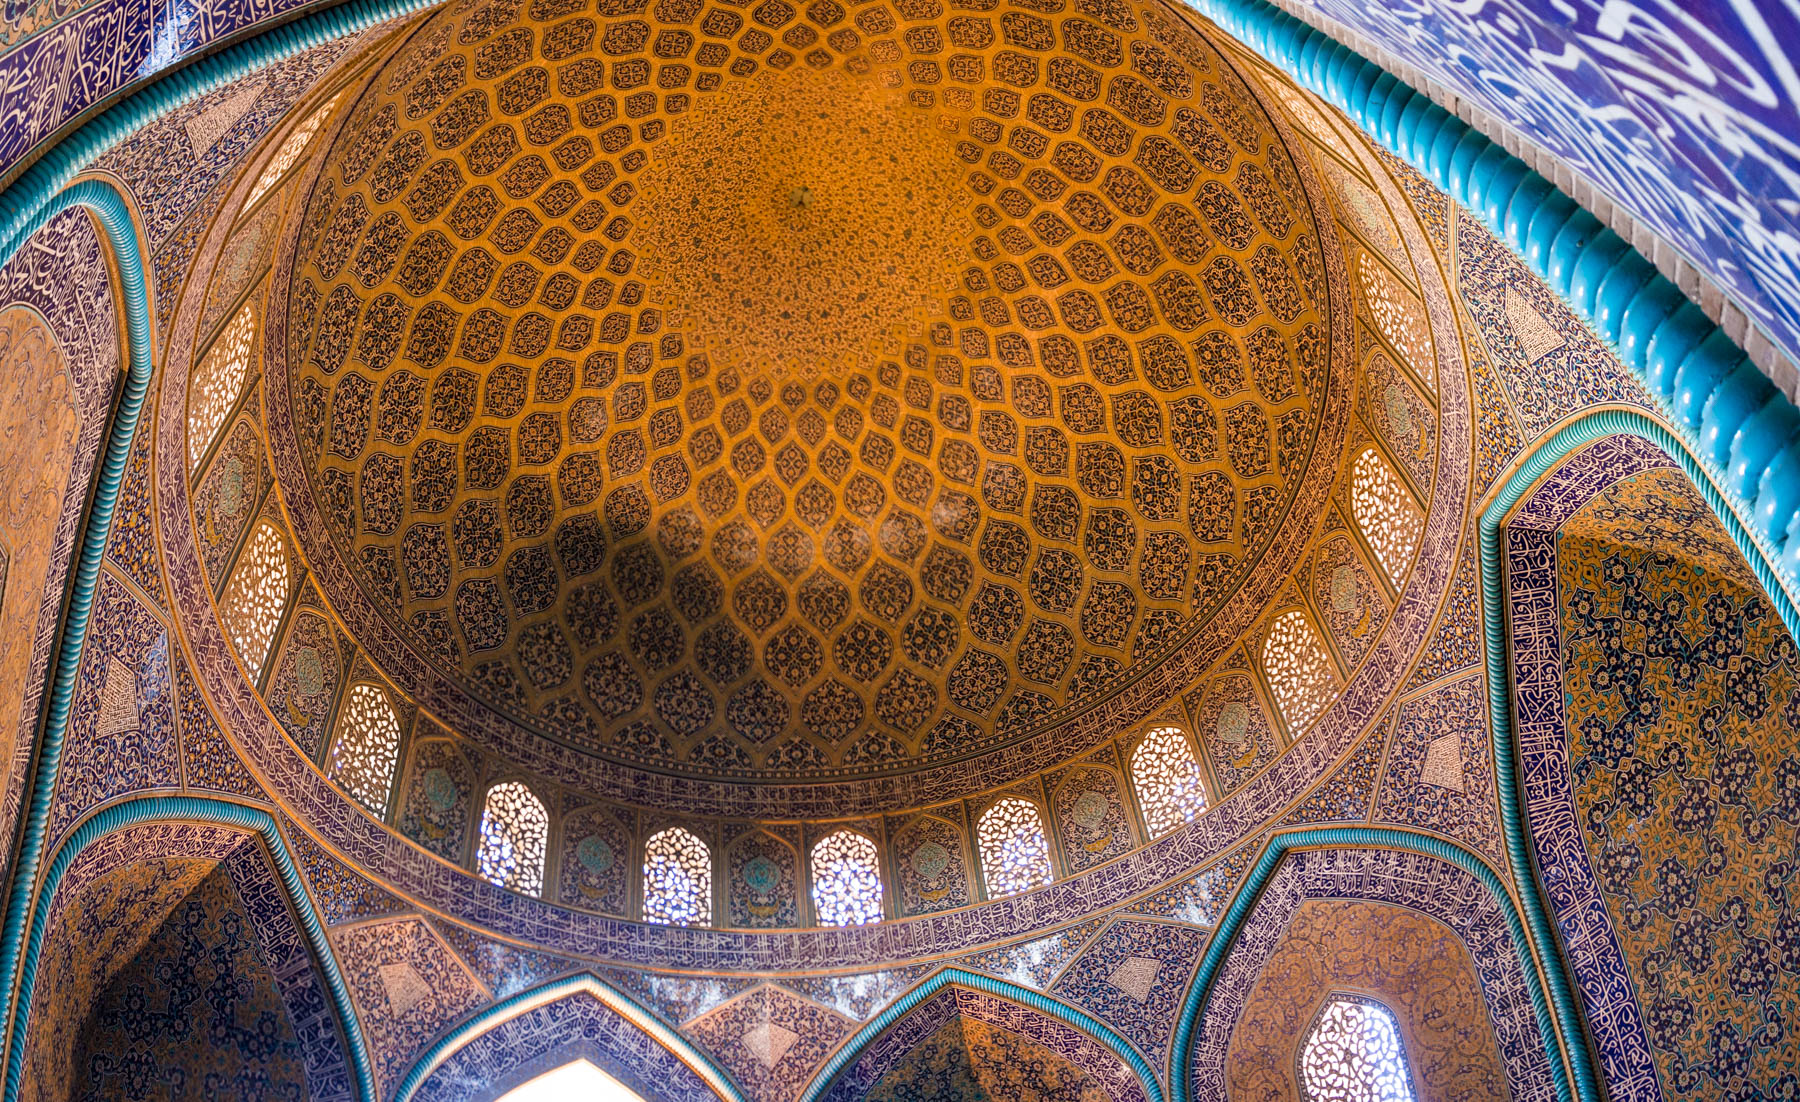 Why dual pricing is unfair - The Sheikh Lotfallah mosque in Esfahan, Iran - Lost With Purpose